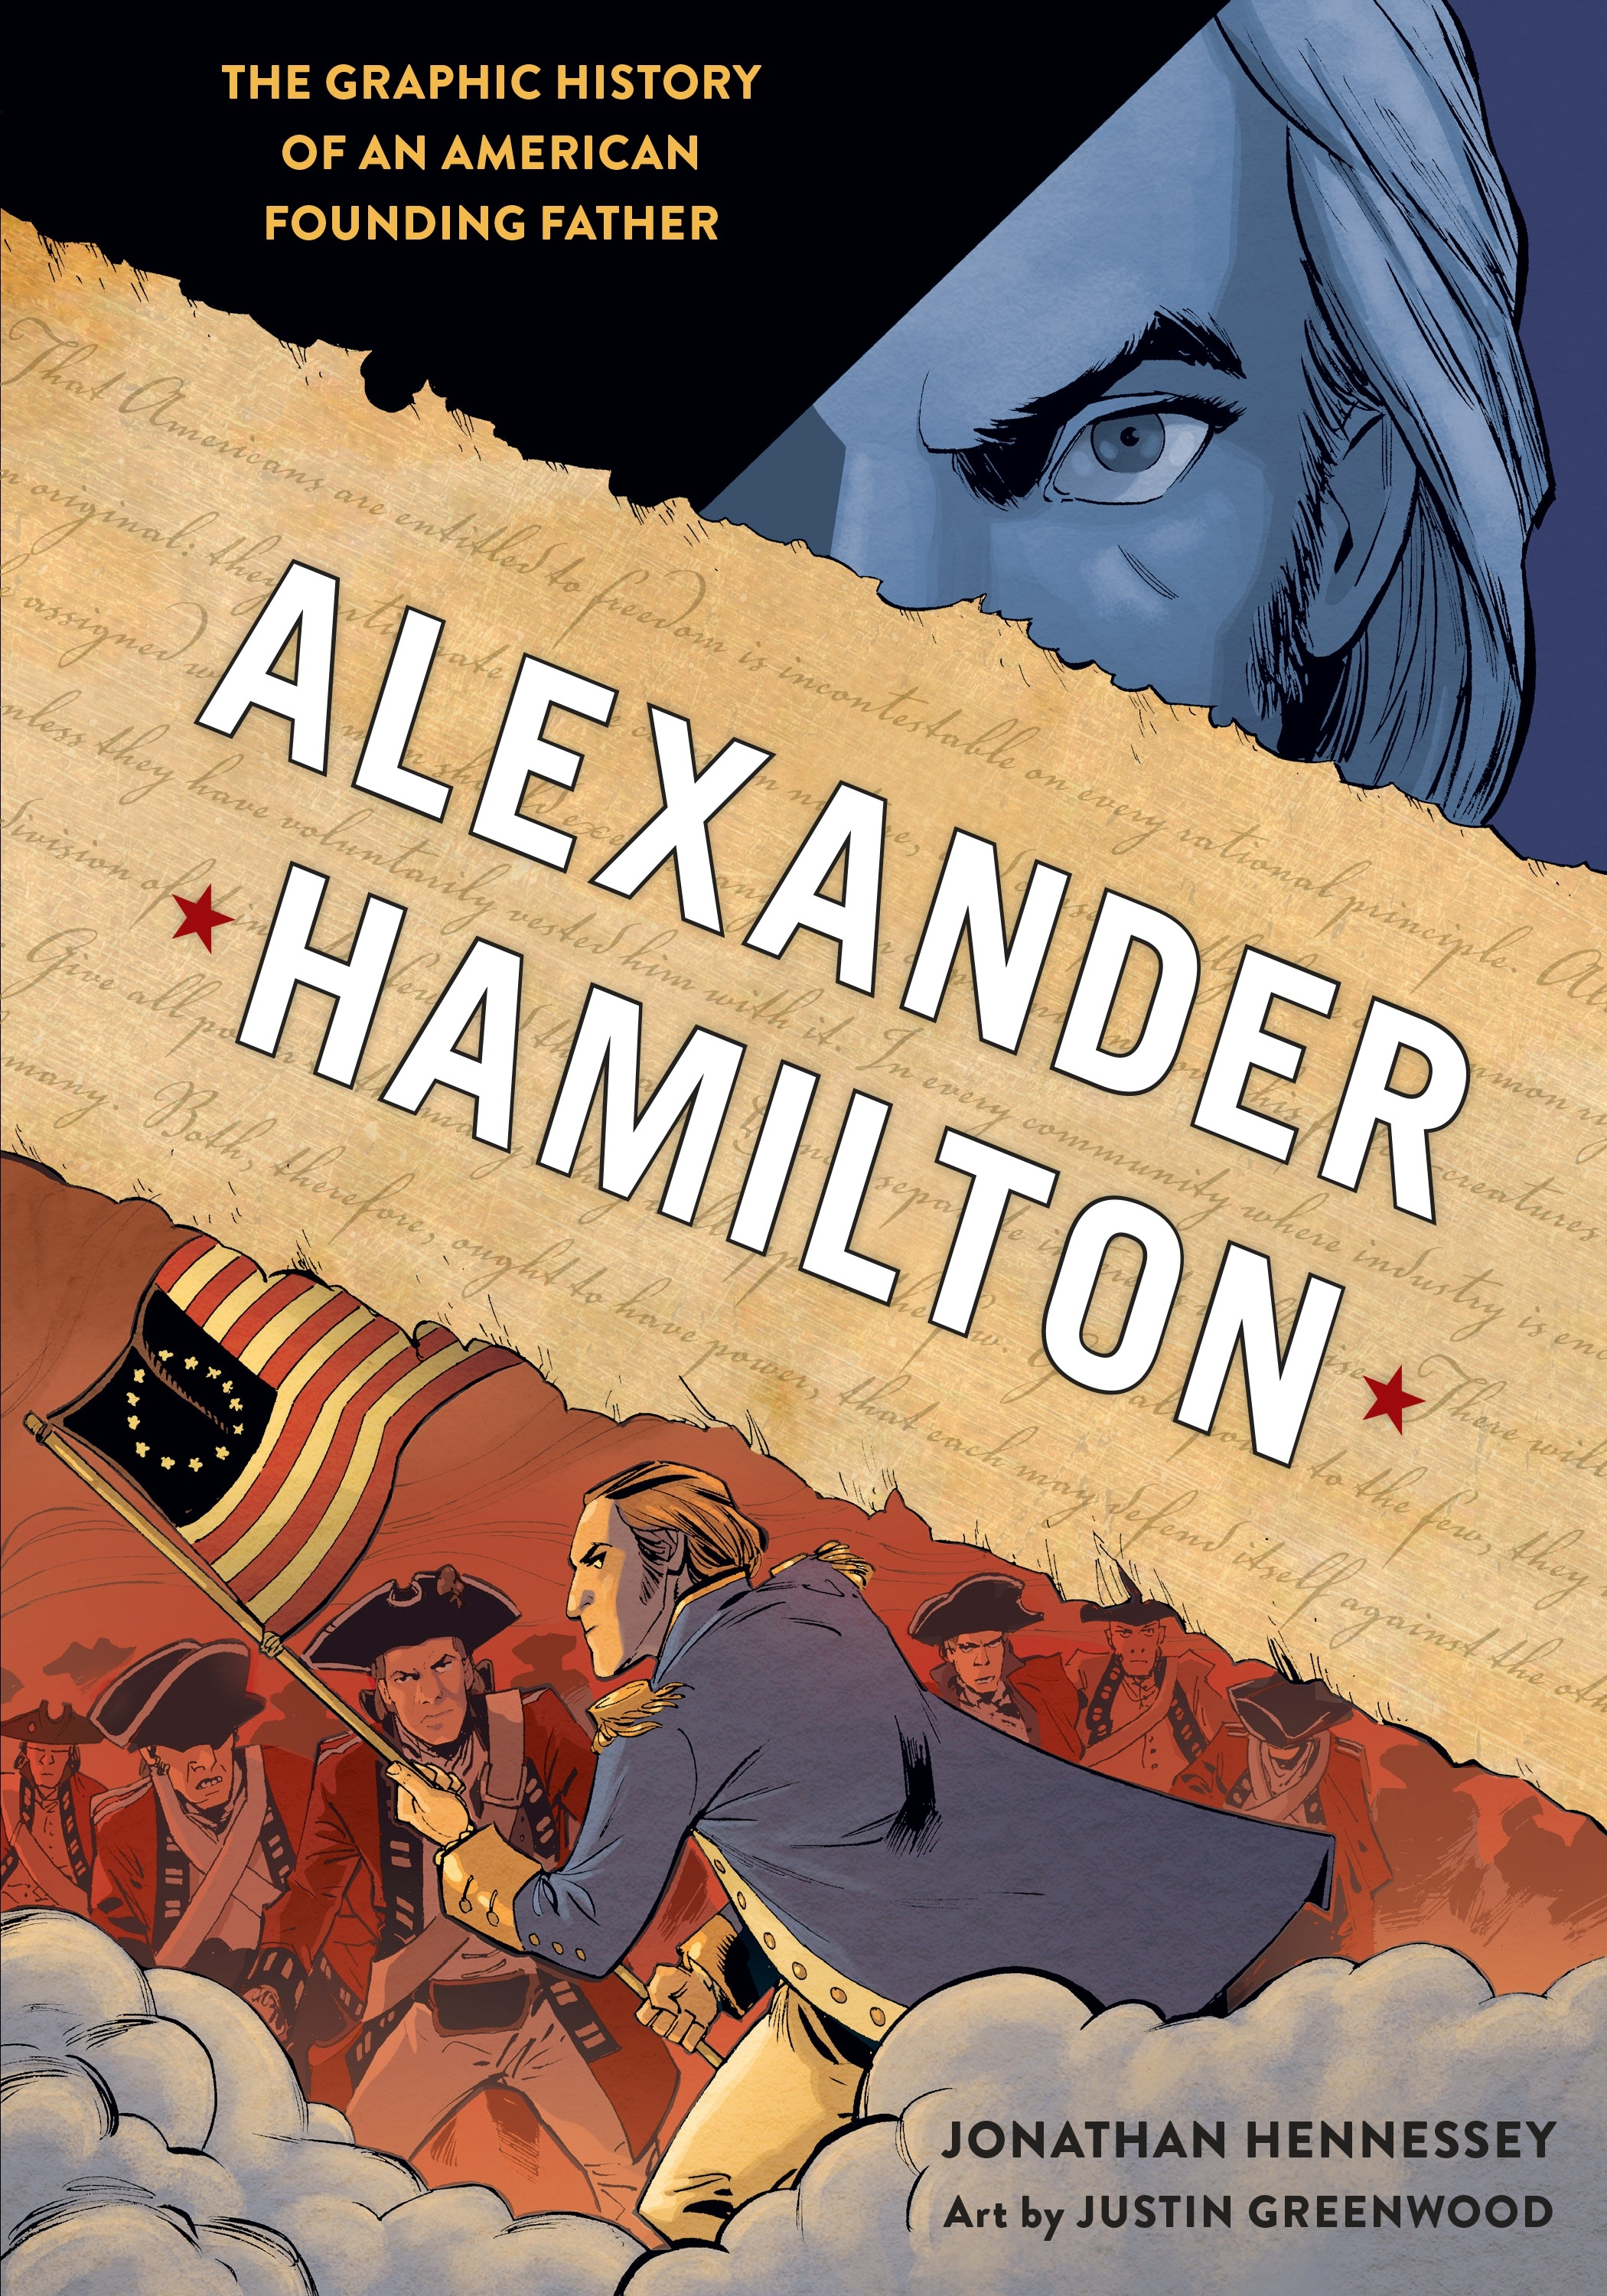 Alexander HamiltonThe Graphic History of an American Founding Father